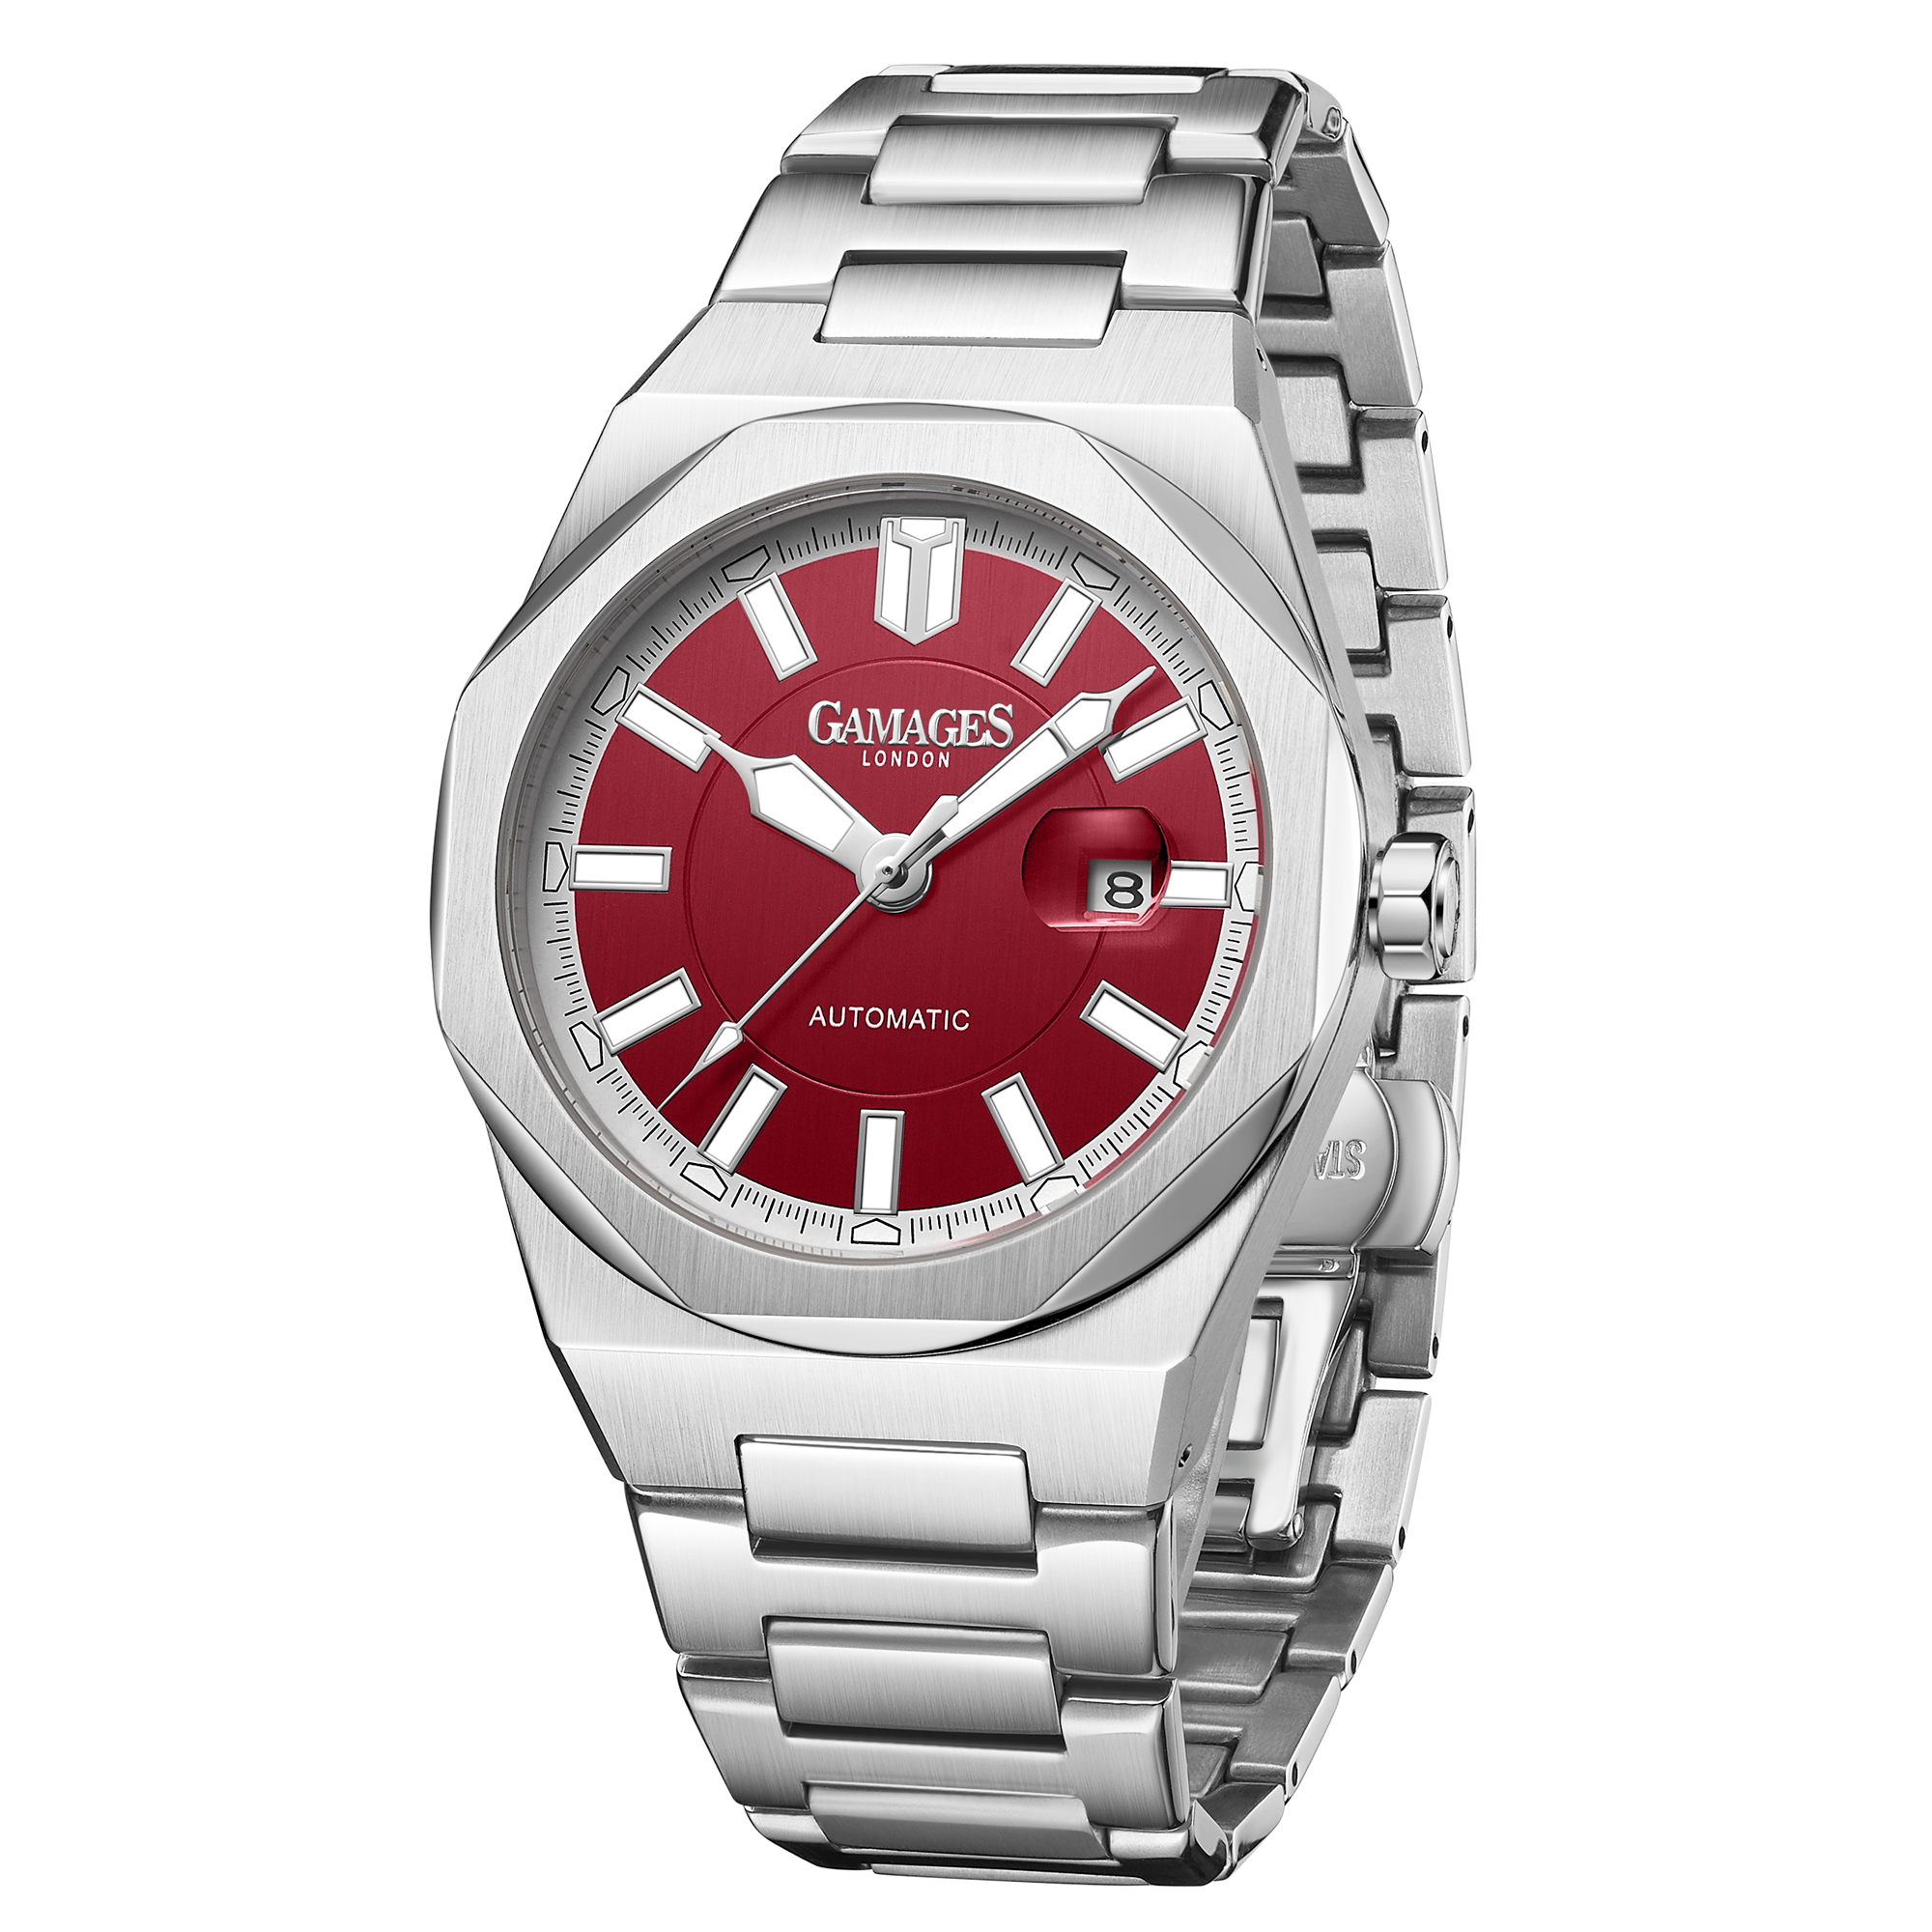 Ltd Edition Hand Assembled GAMAGES Quintessential Automatic Red – 5 Year Warranty & Free Delivery - Image 2 of 5